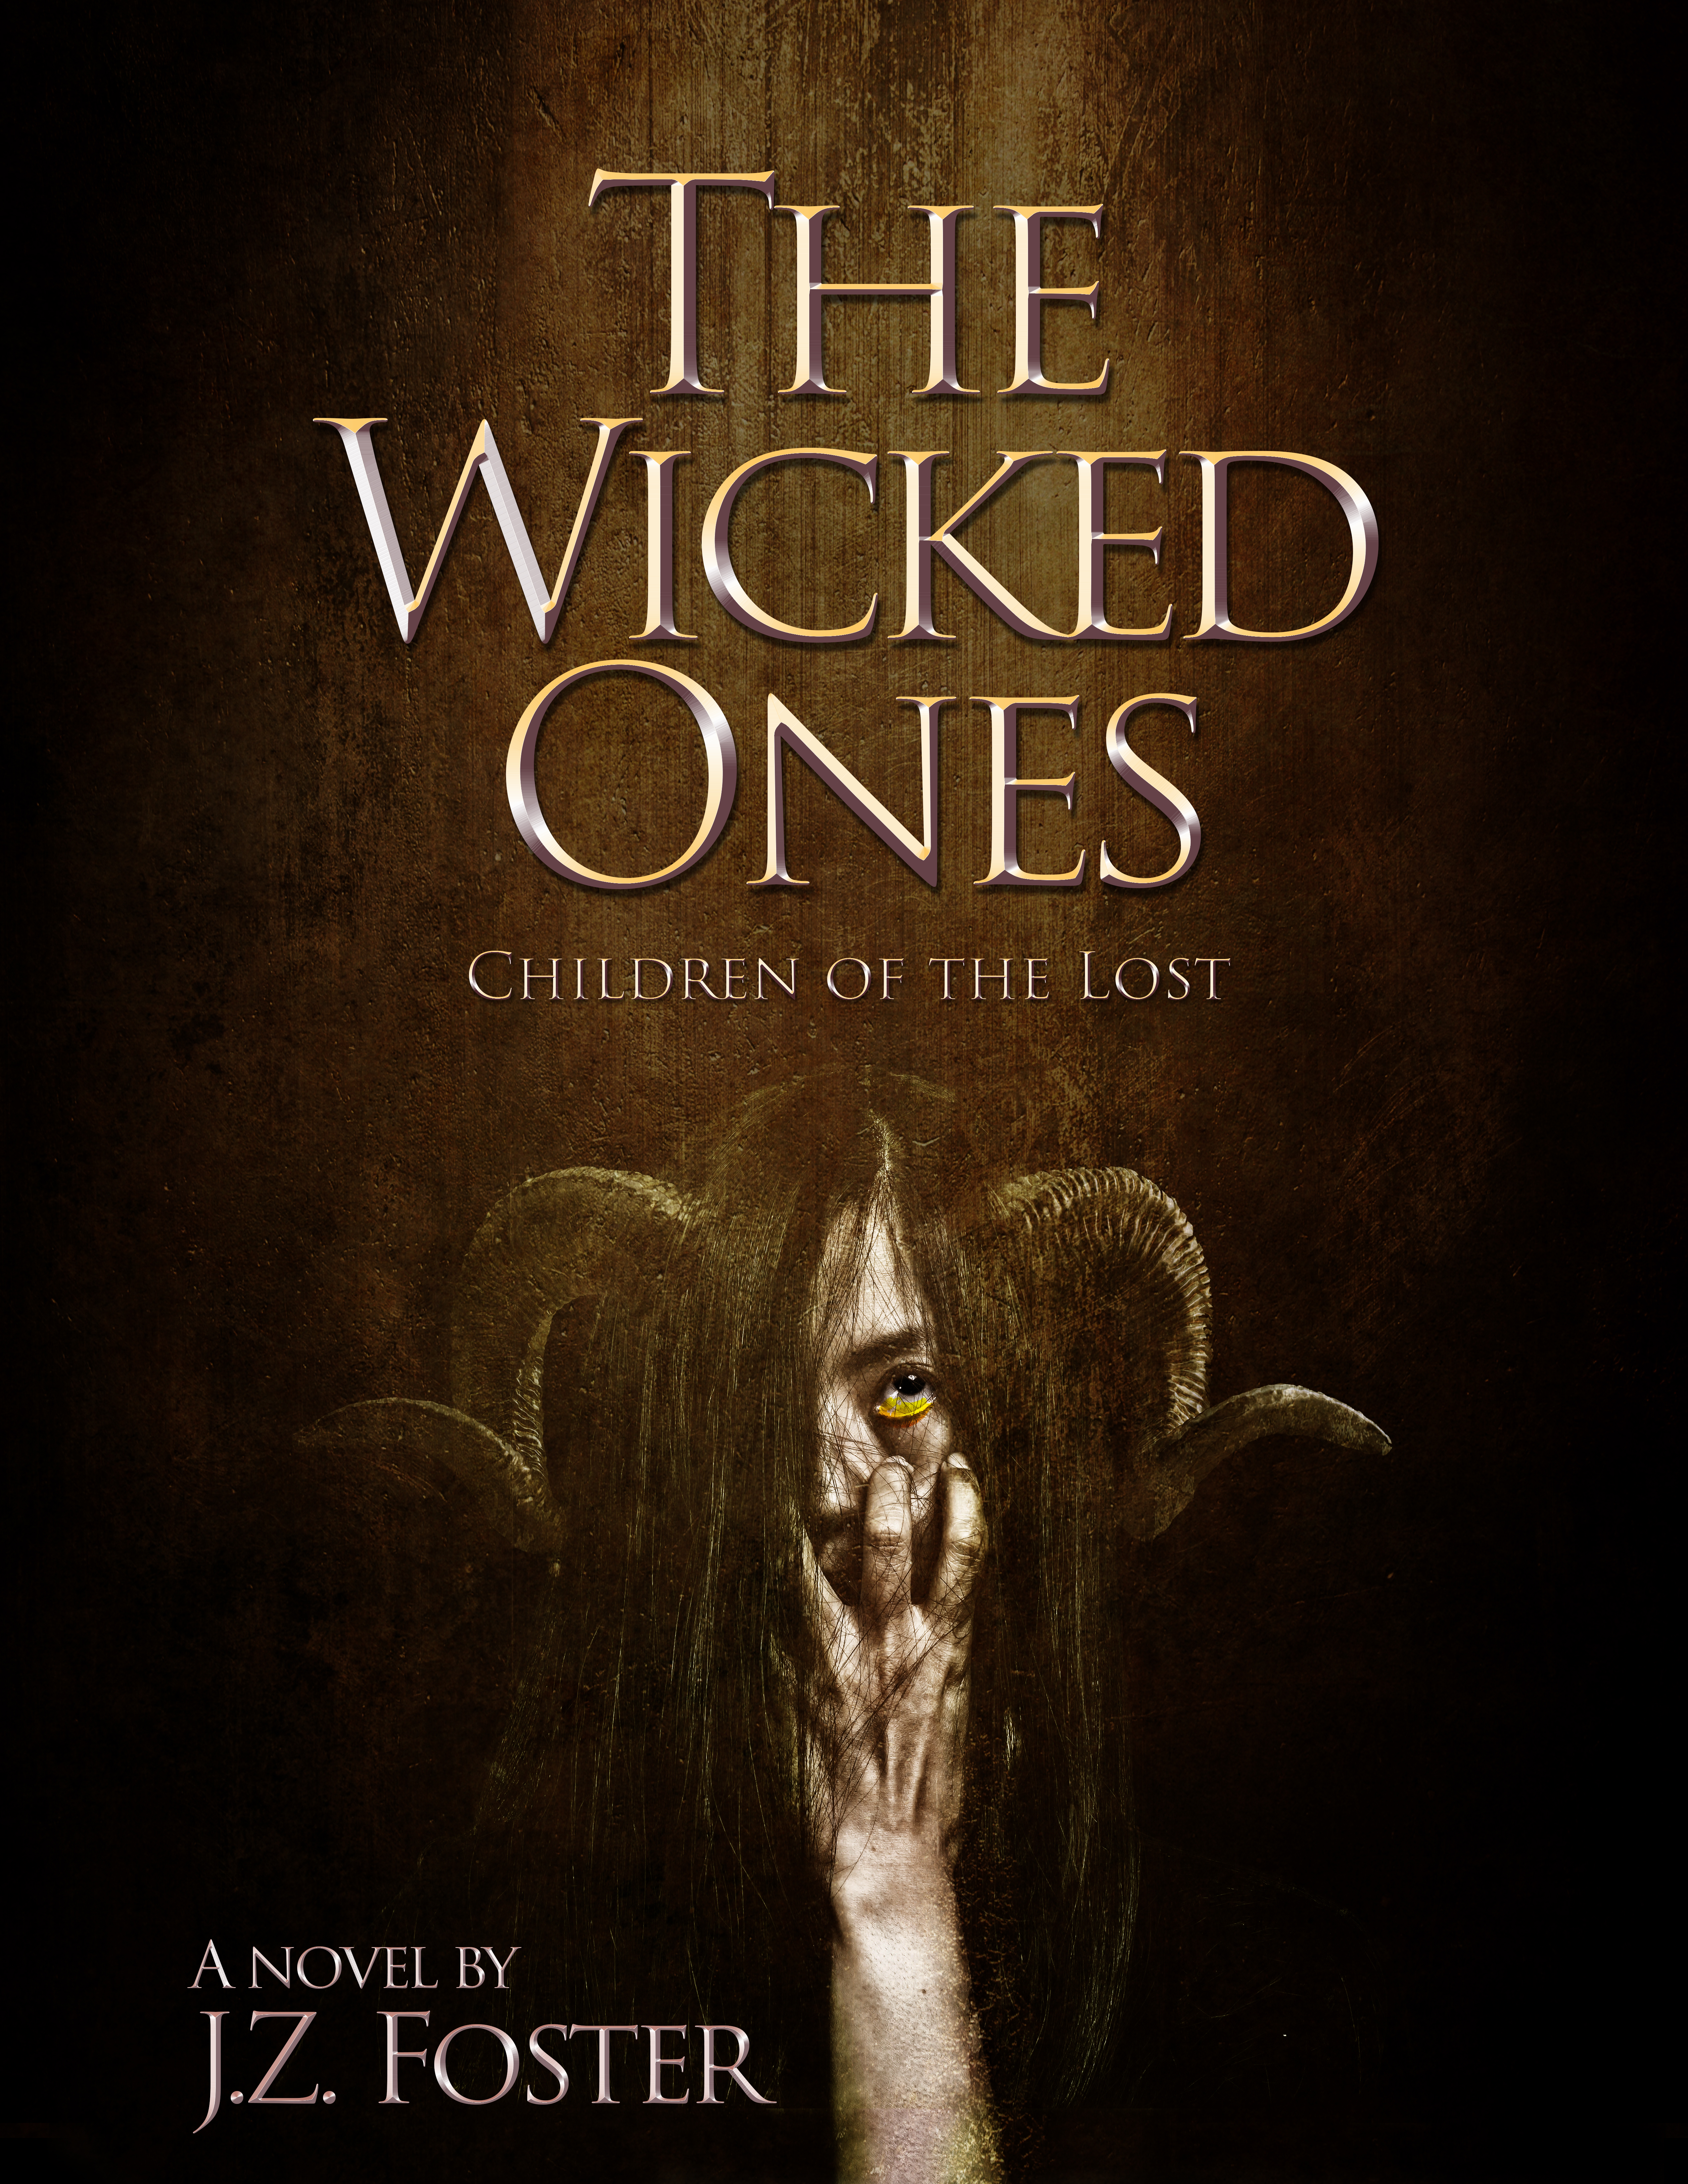 Wicked 2 master flat for ePub